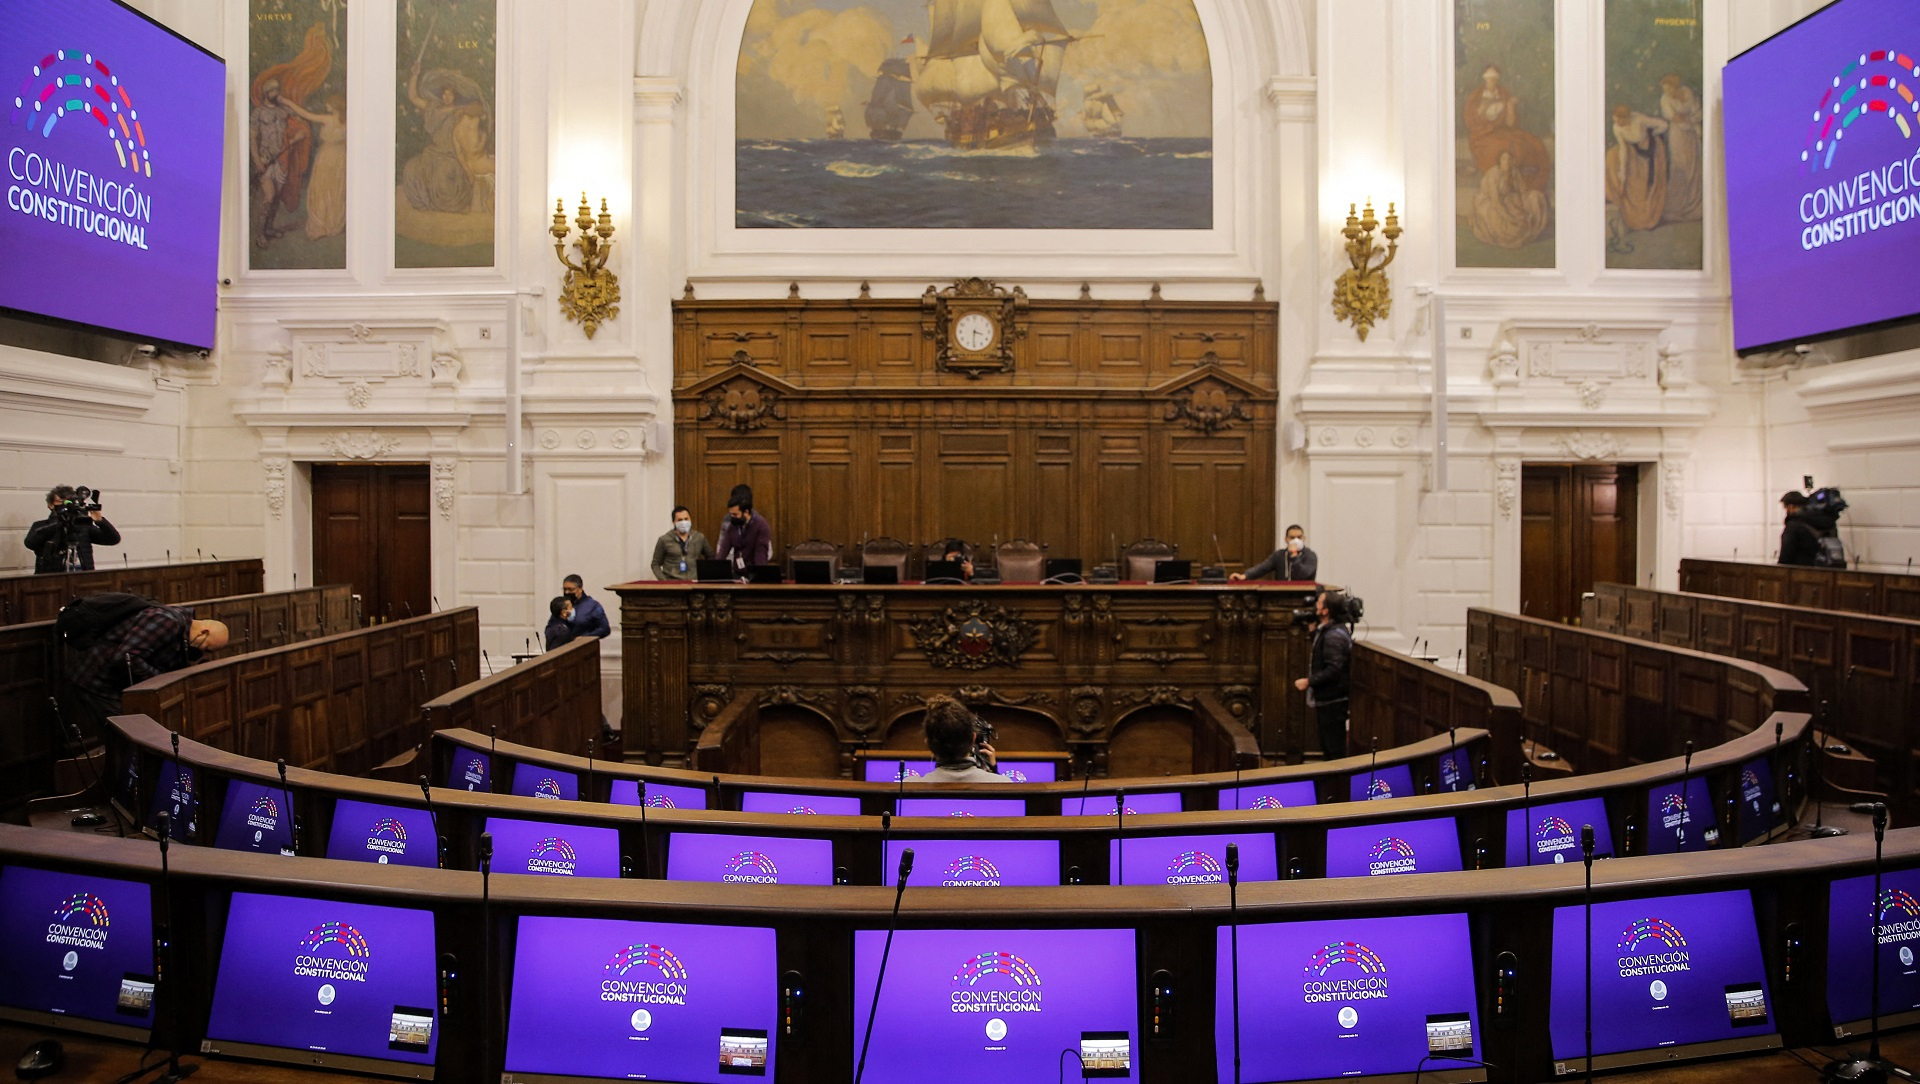 View of the interior of the National Congress headquarters in Santiago which will house 155 constituents who will draft the new Constitution, in Santiago 30 June 2021. - The assembly will be installed on July 4. (Photo by JAVIER TORRES / AFP)